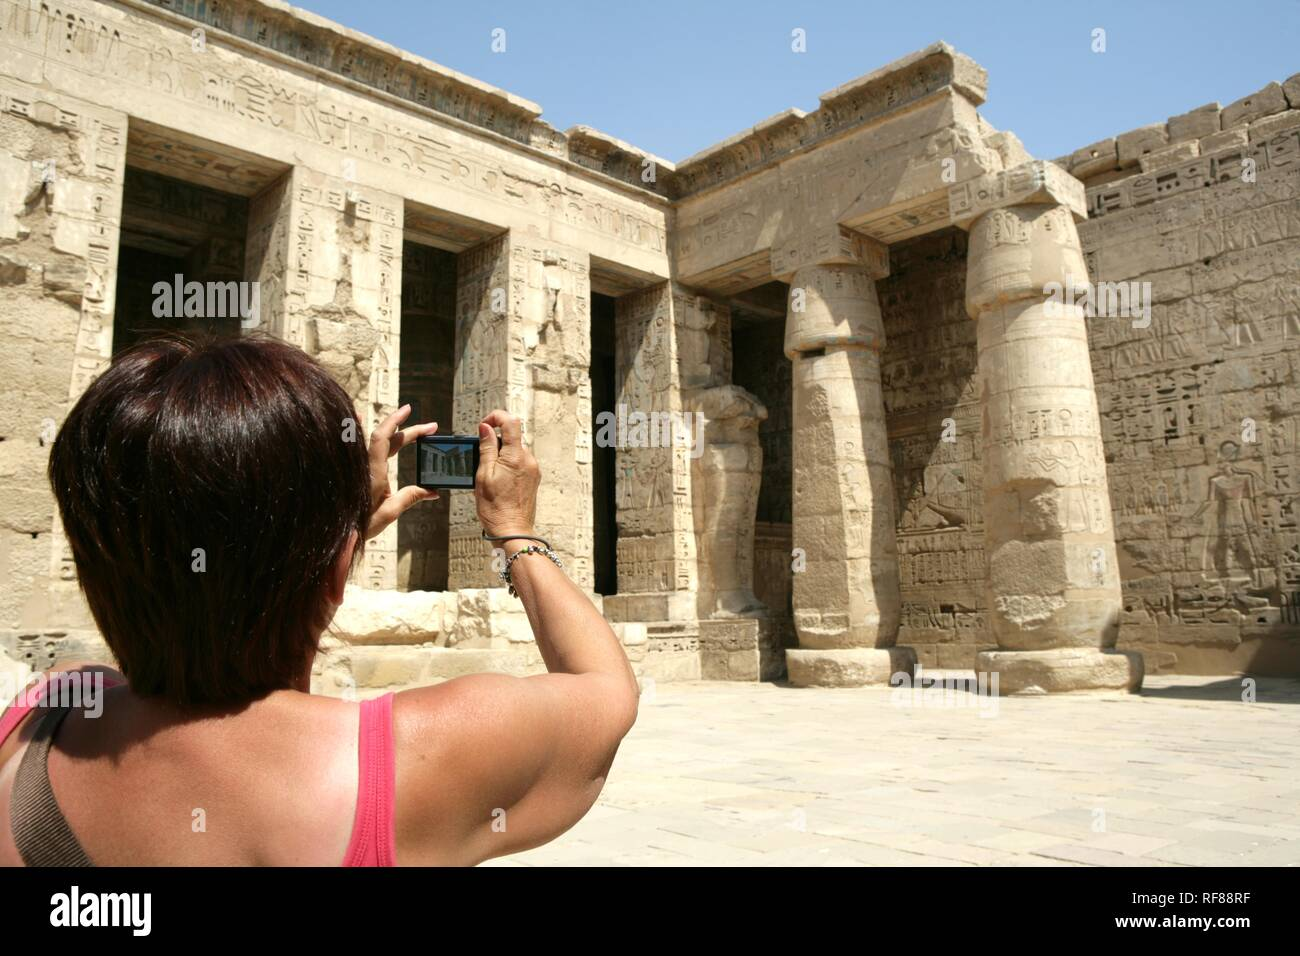 Tourist, Medinet Habu, Mortuary Temple of Ramesses III, West Thebes, Luxor, Egypt, Africa Stock Photo